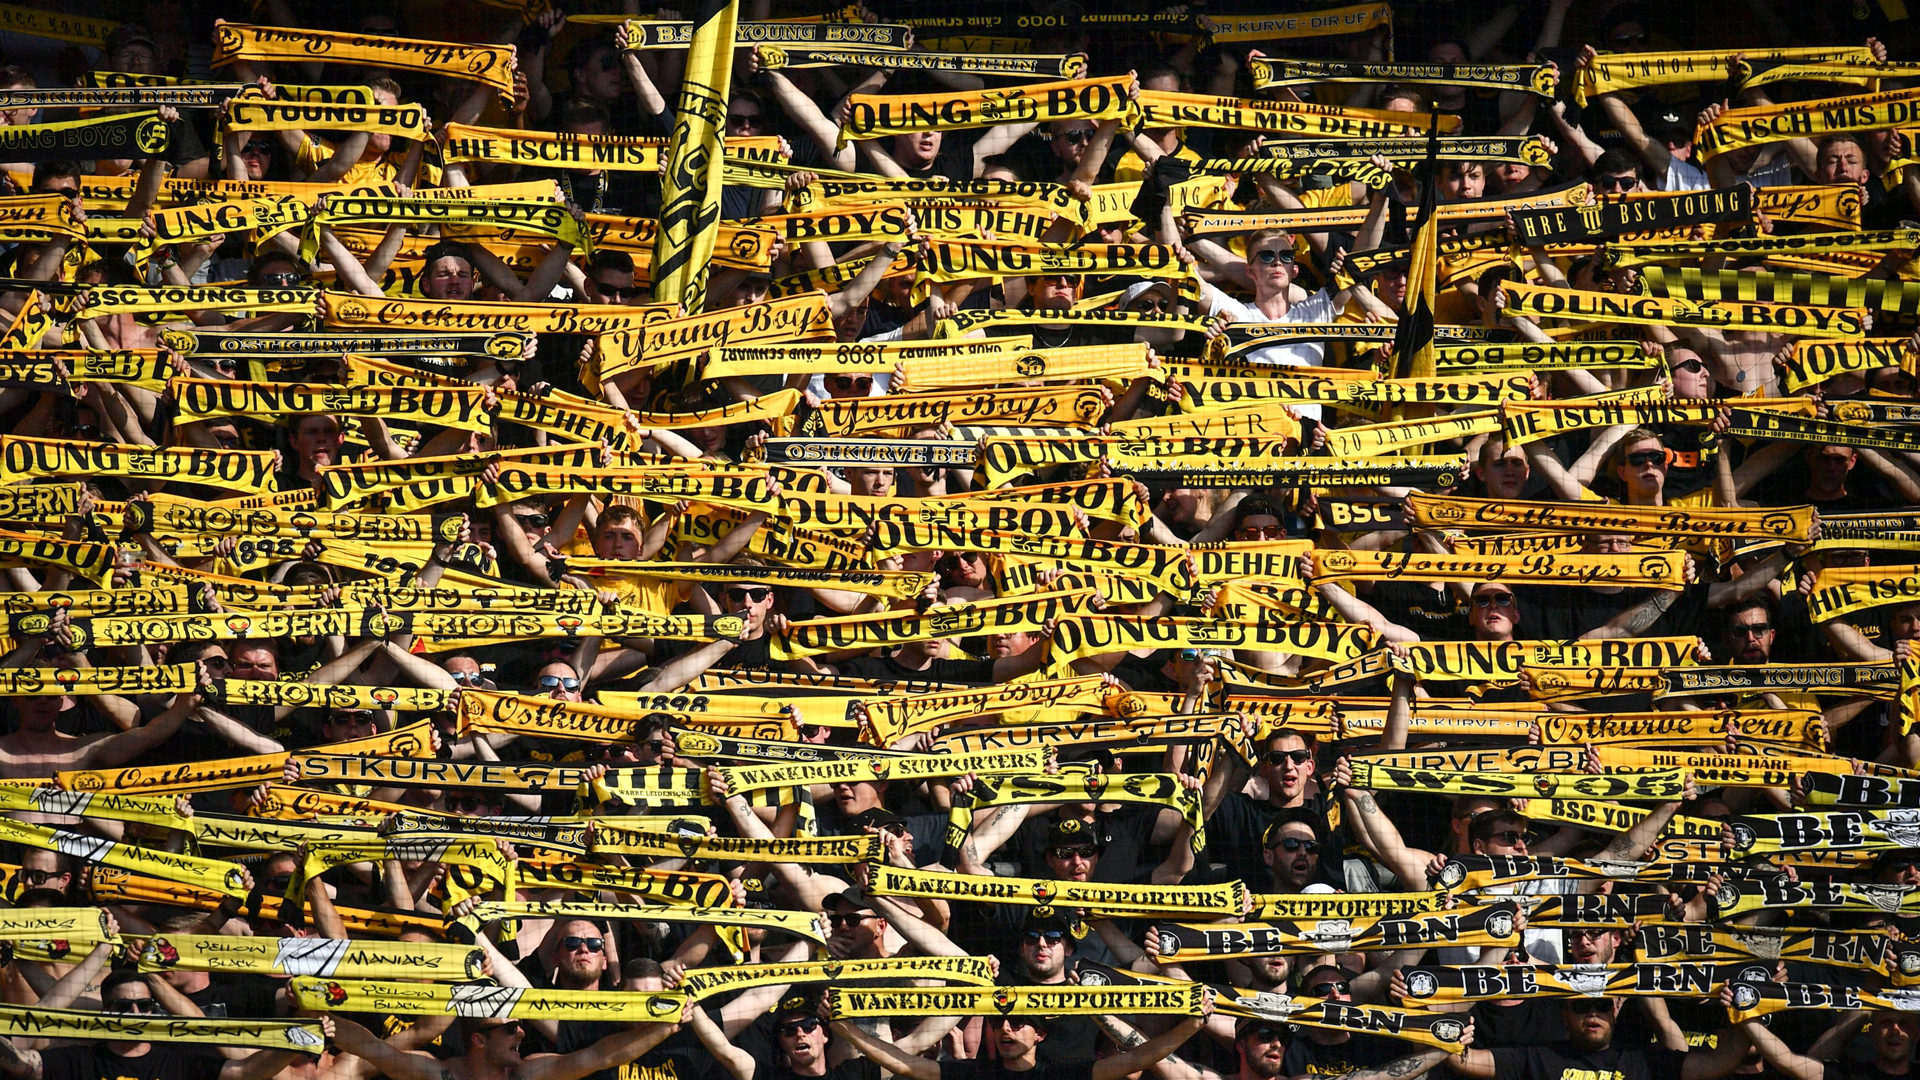 Young Boys Bern Fans Switzerland Schweiz